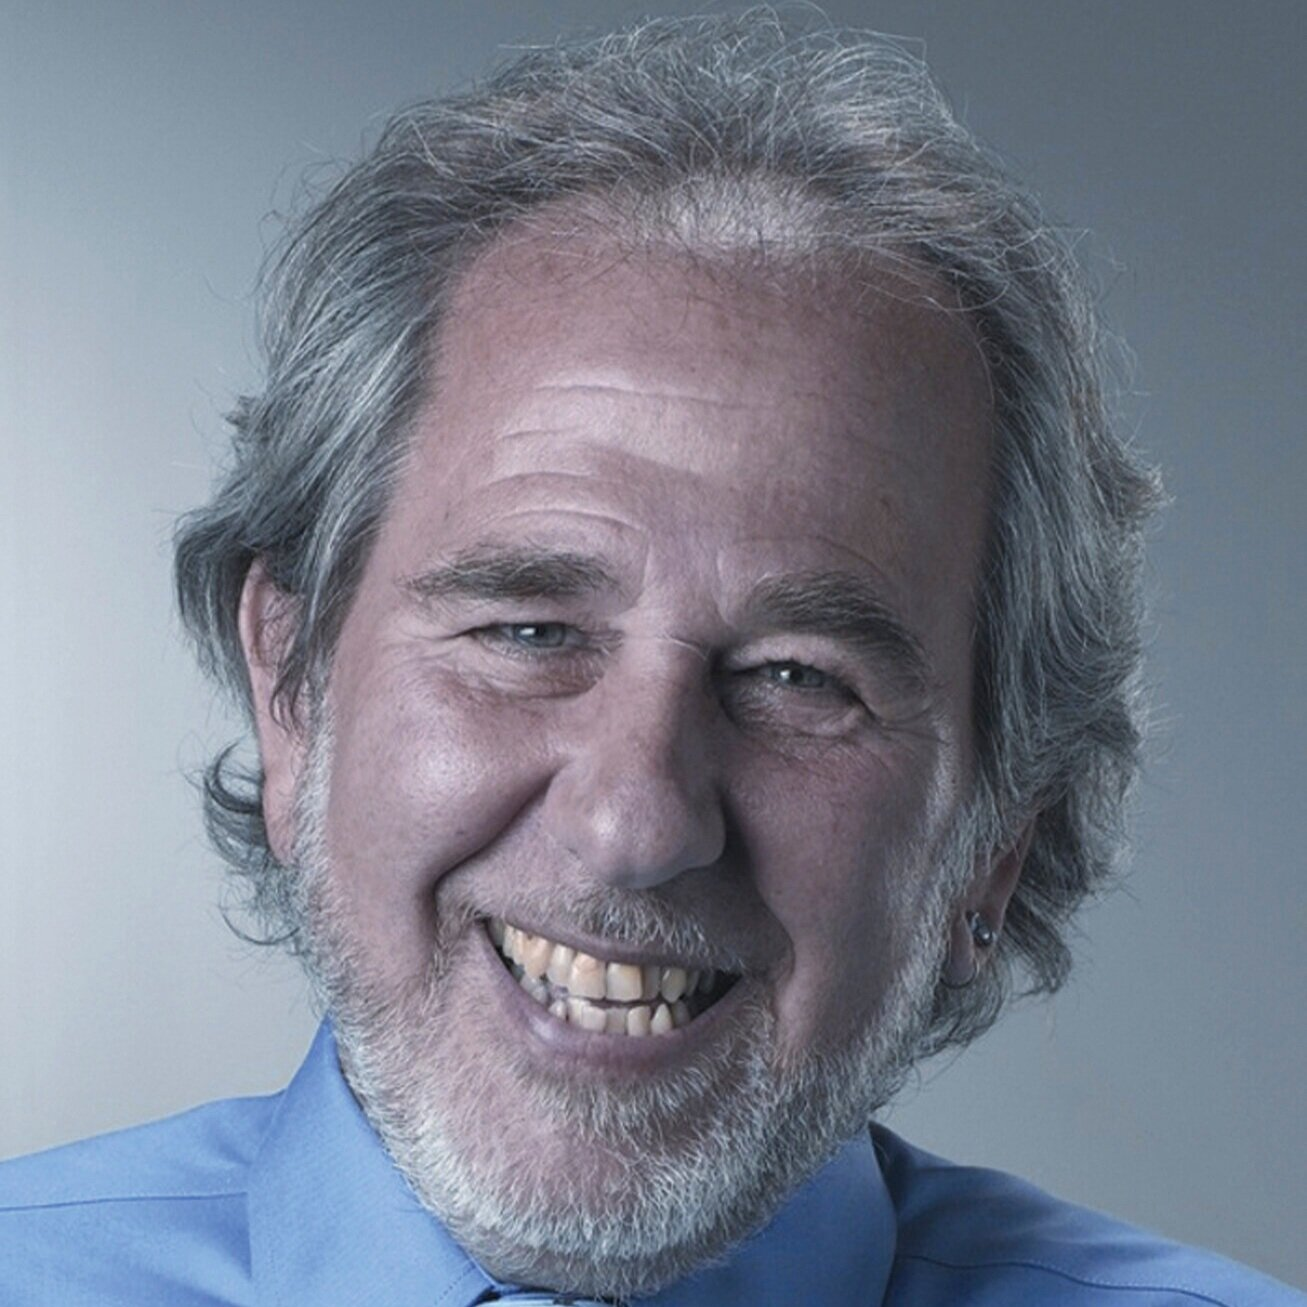 Bruce Lipton - Meet stem cell biologist Bruce Lipton, who is an internationally recognised leader in bridging science and spirit. Bruce explains how we are now facing the 6th mass extinction our world has ever experienced, caused by human behaviour, which is why we all must come together and change - our deep inner programming - so we can create a better future – both for ourselves and the world.